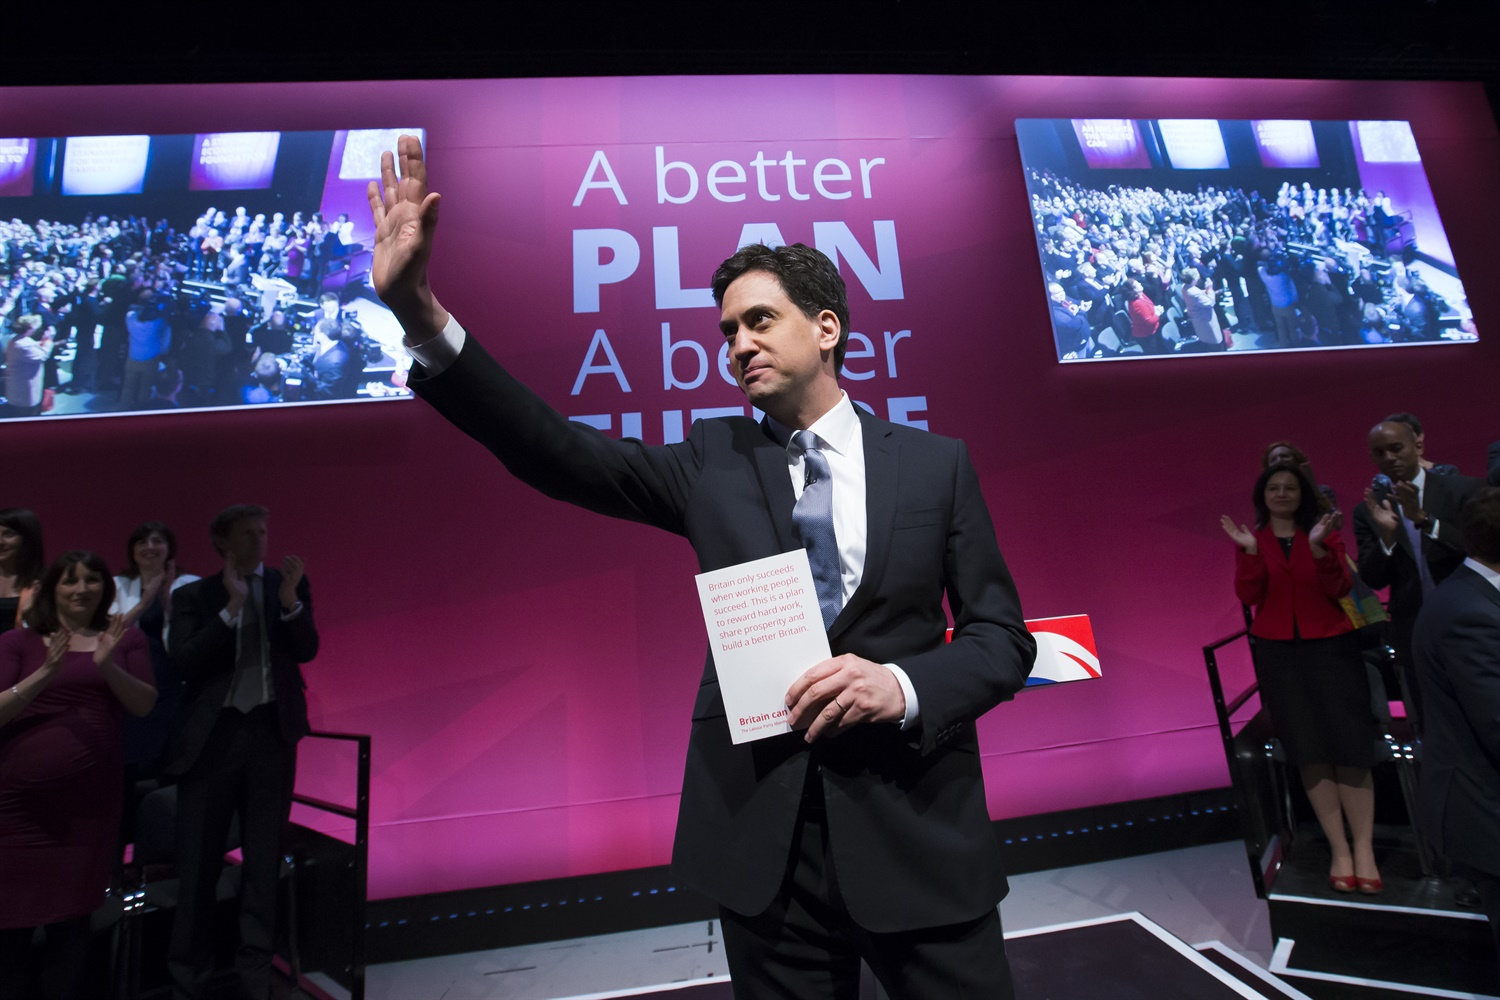 Labour pledges franchising review in manifesto